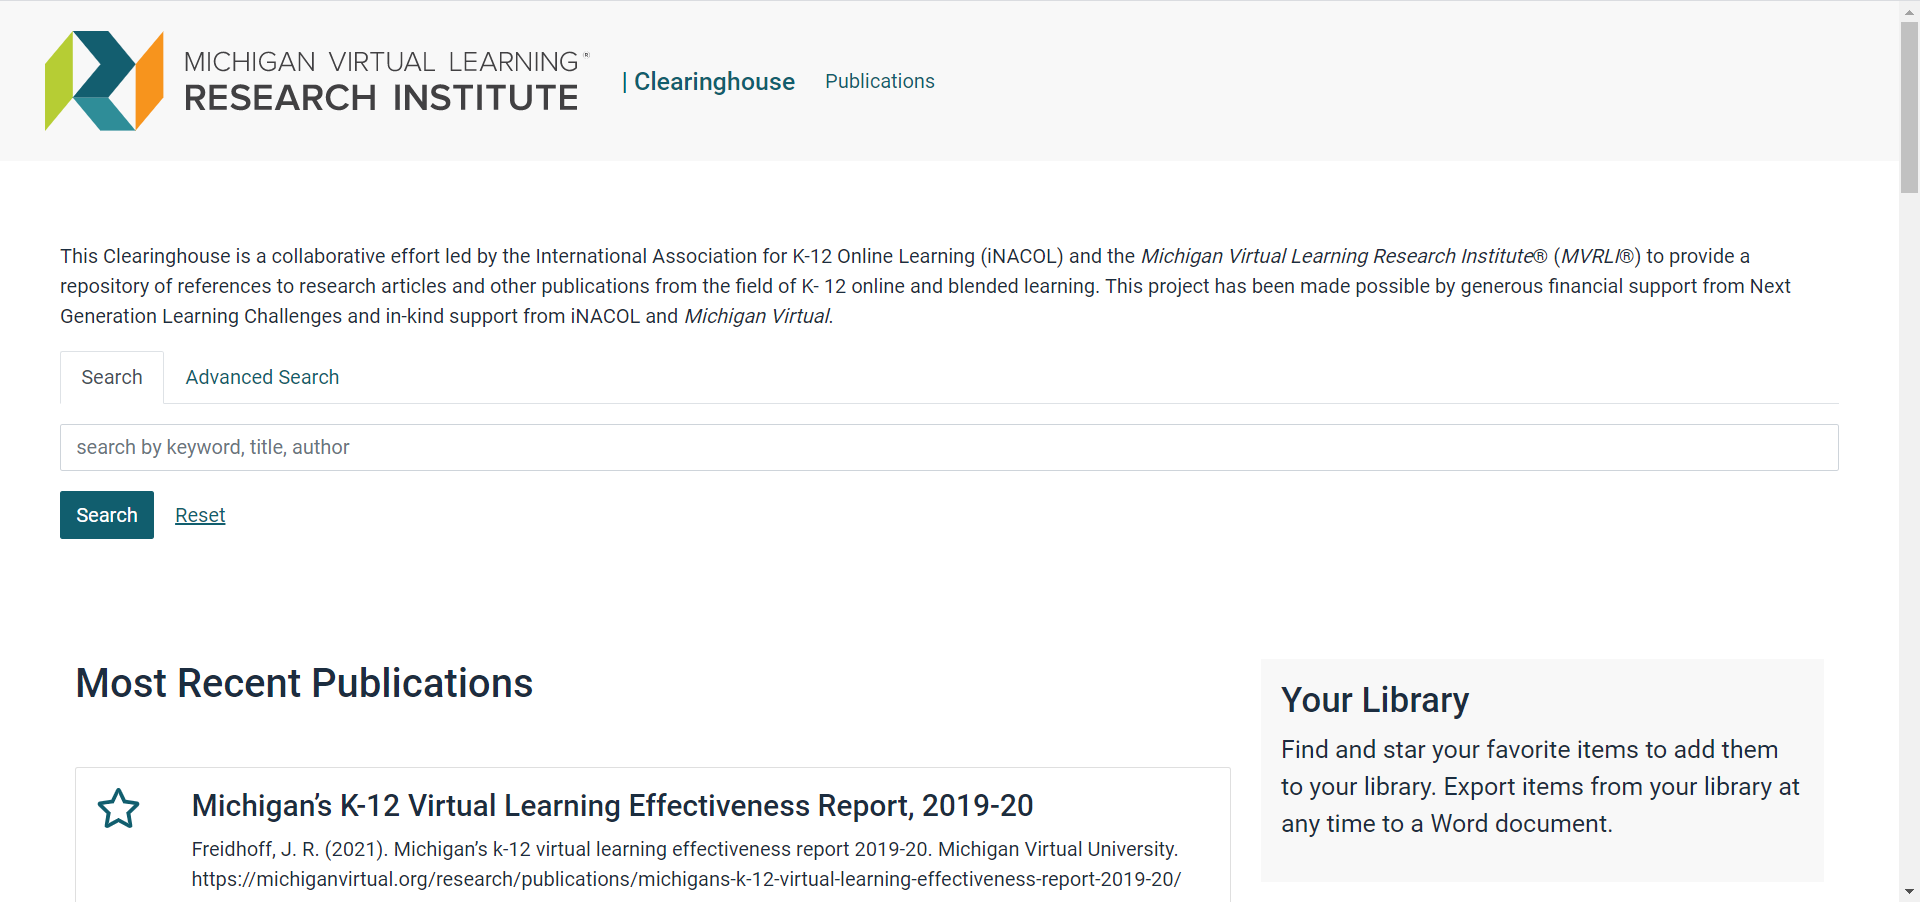 Image of the Research Clearinghouse landing page.